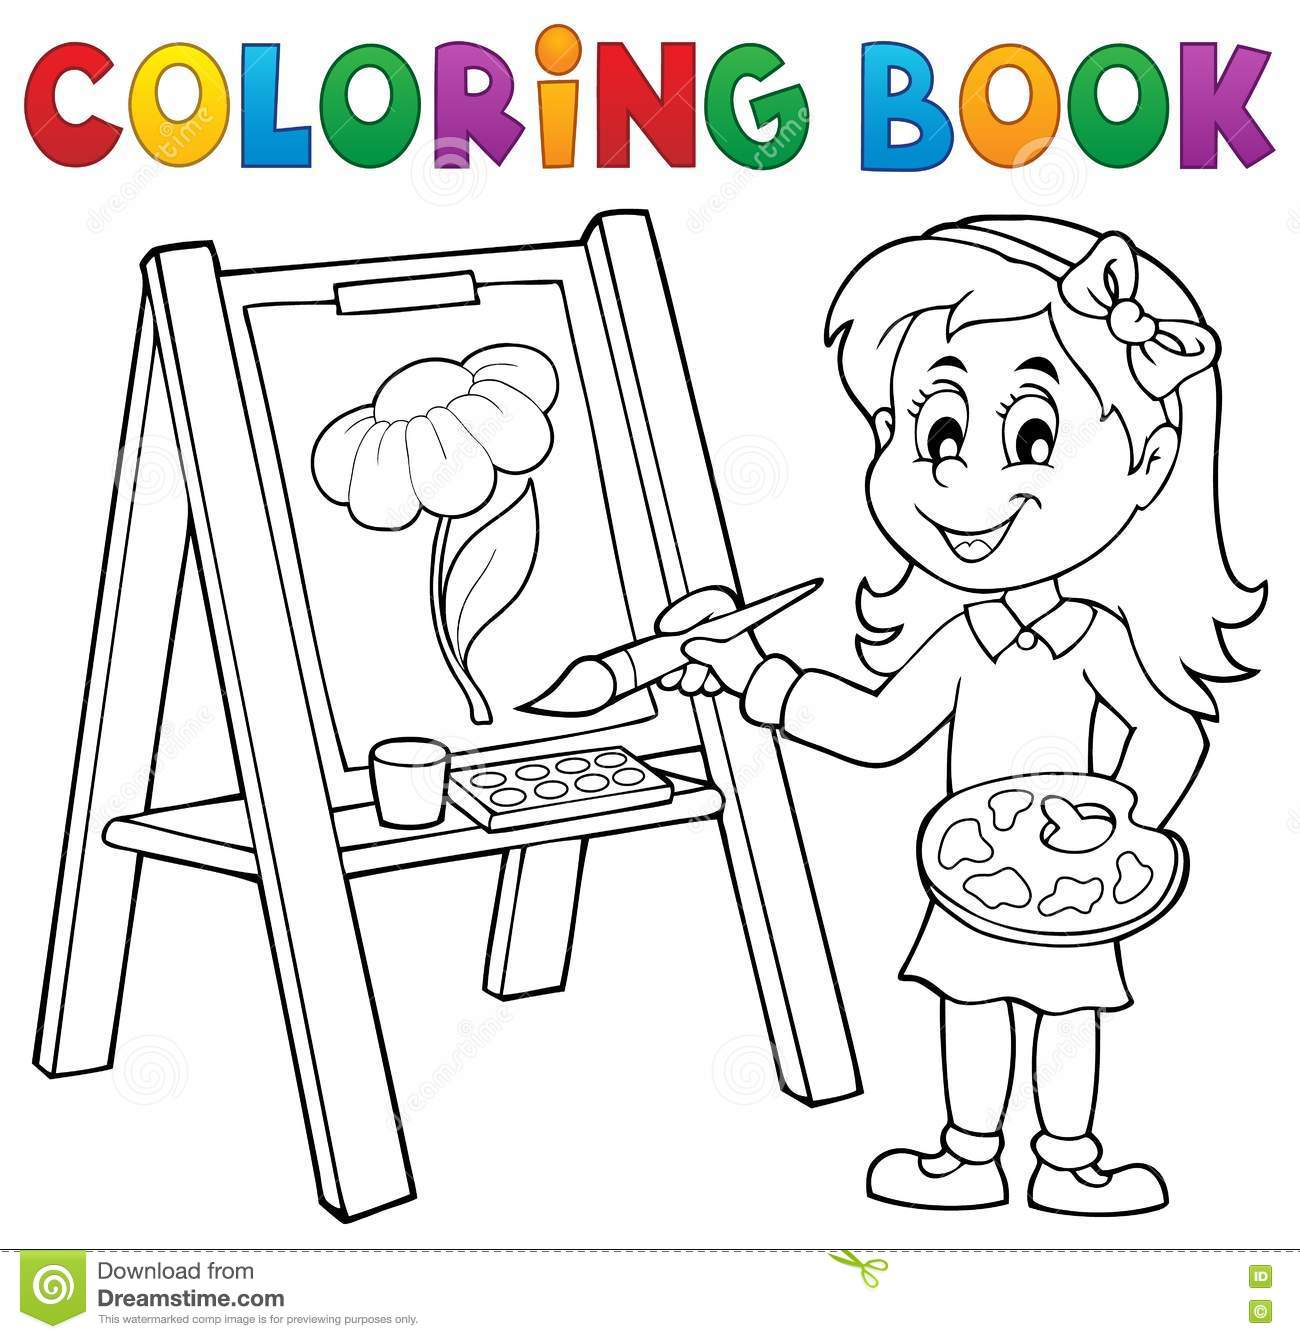 Coloring Book Girl Painting On Canvas Stock Vector - Illustration of ...